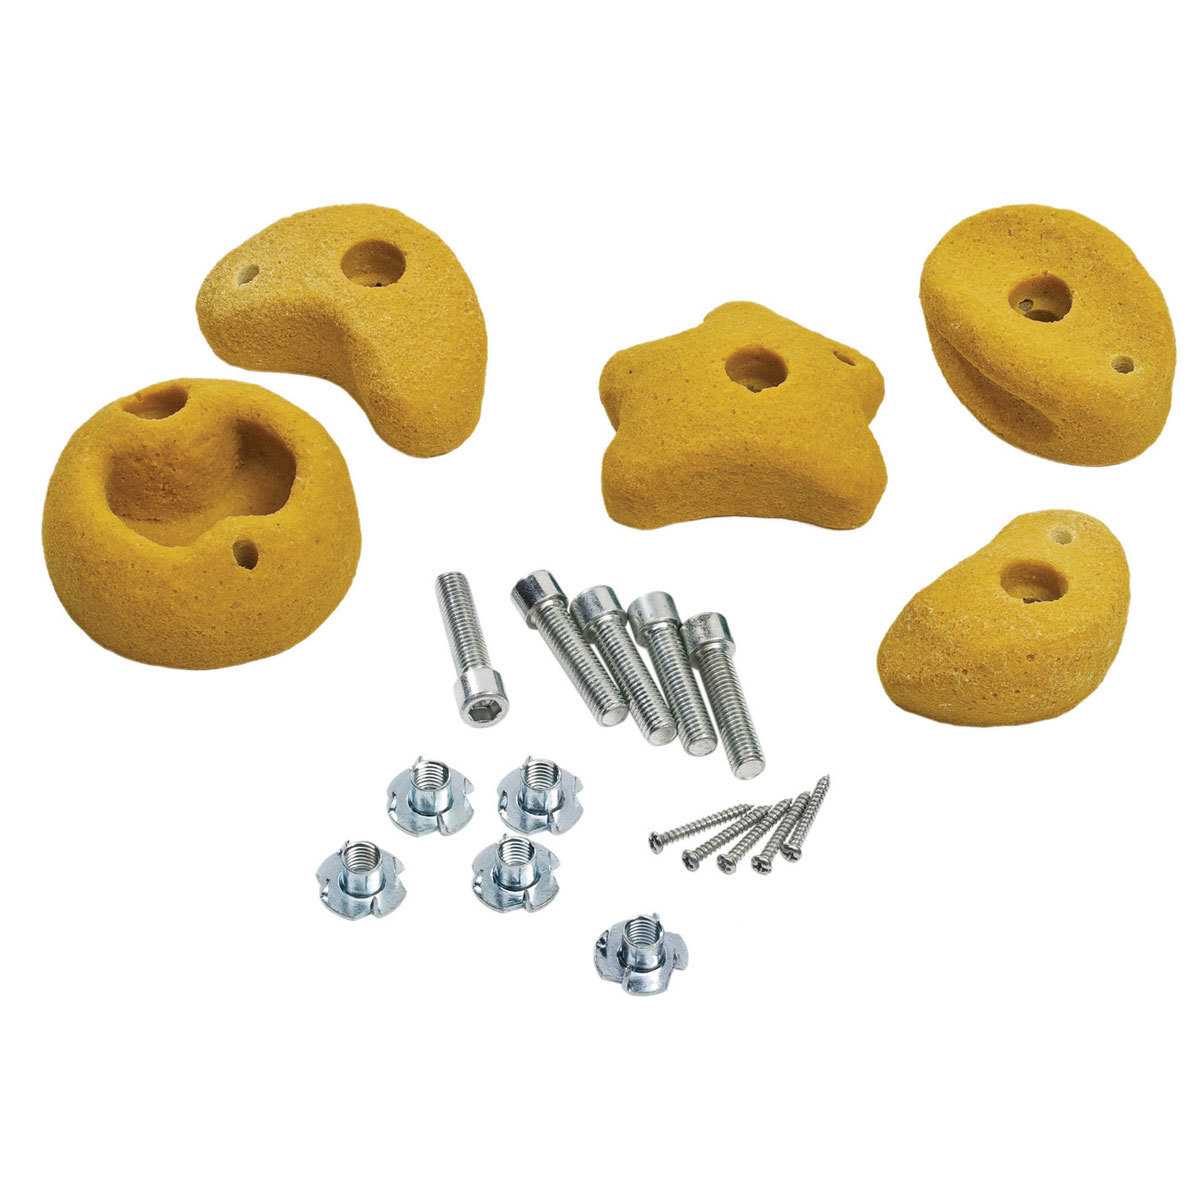 pierres à grimper - set de 5 pièces - medium - jaune